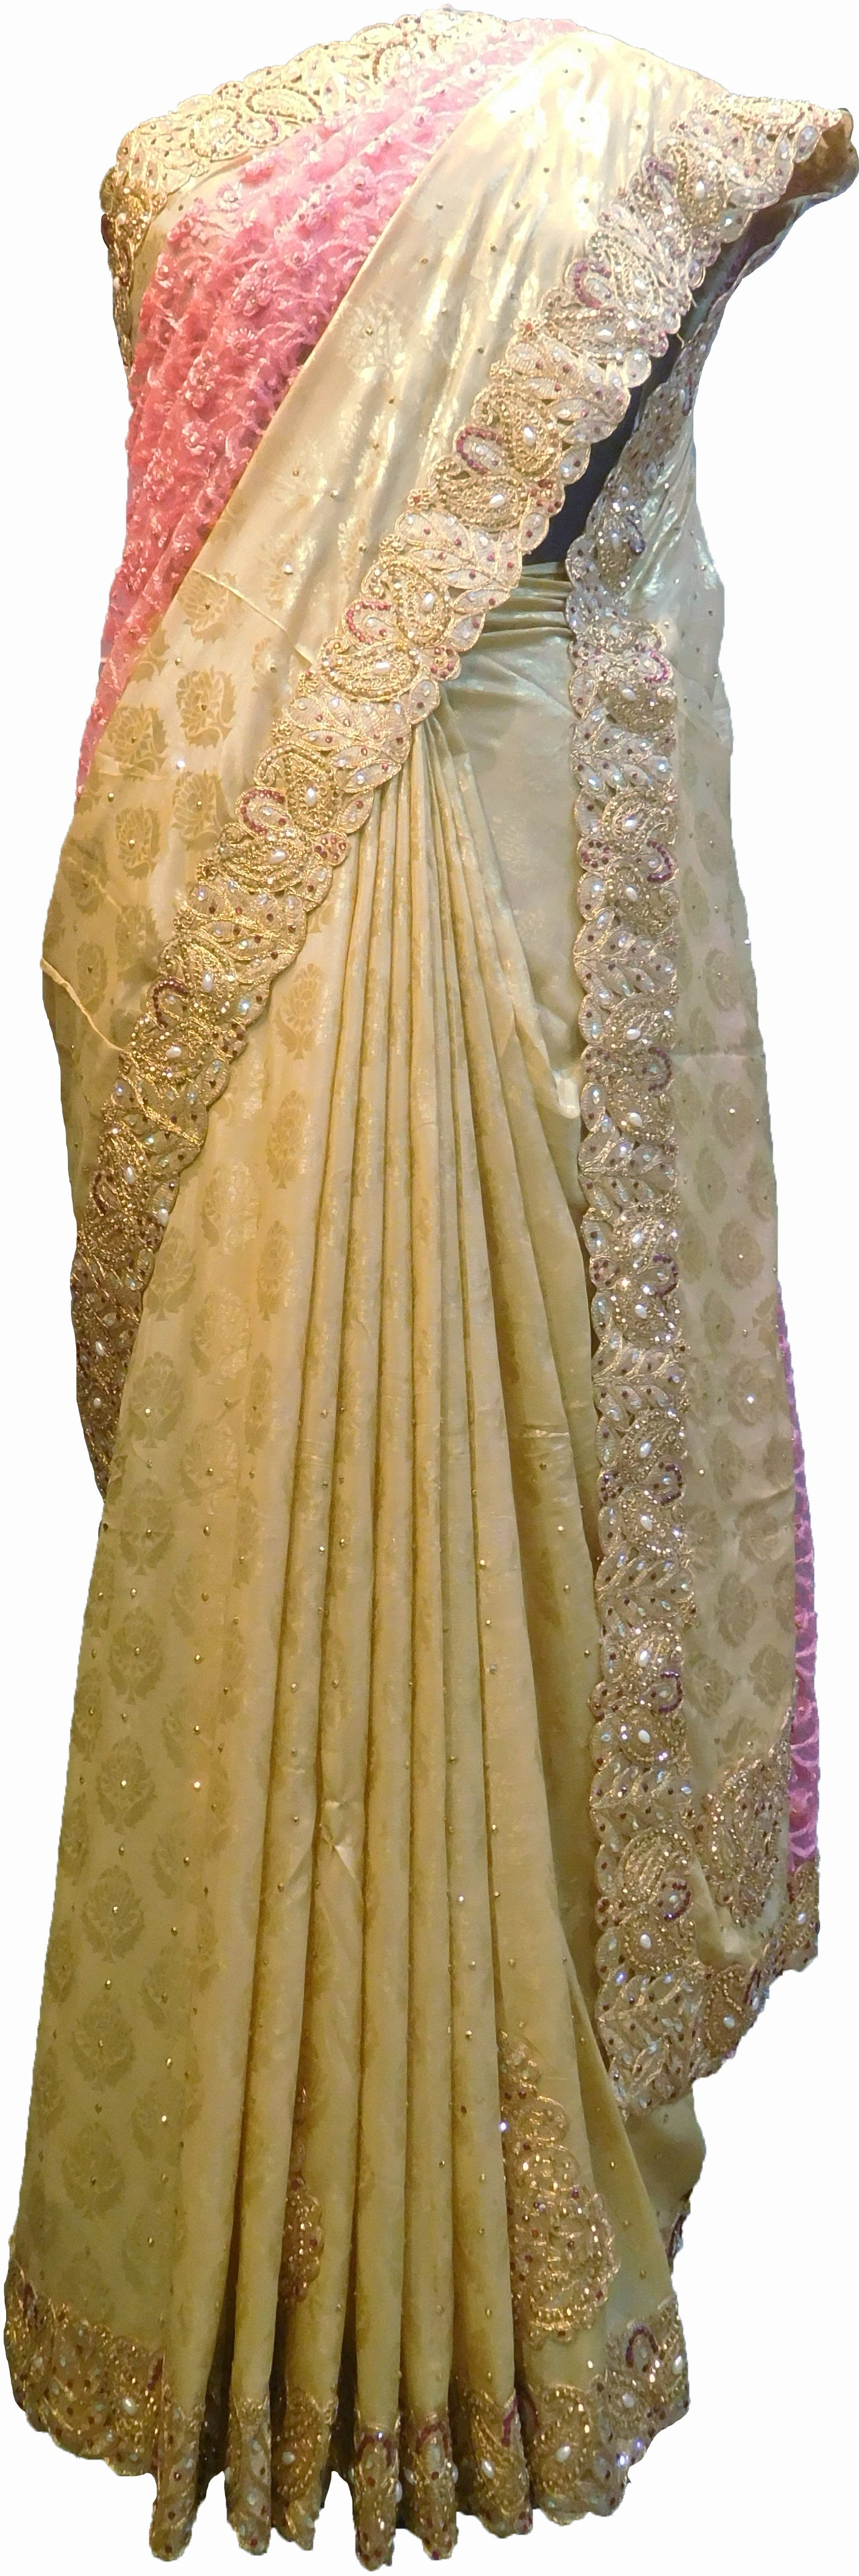 SMSAREE Pink & Cream Designer Wedding Partywear Brasso & Net Zari Thread Pearl & Stone Hand Embroidery Work Bridal Saree Sari With Blouse Piece F207